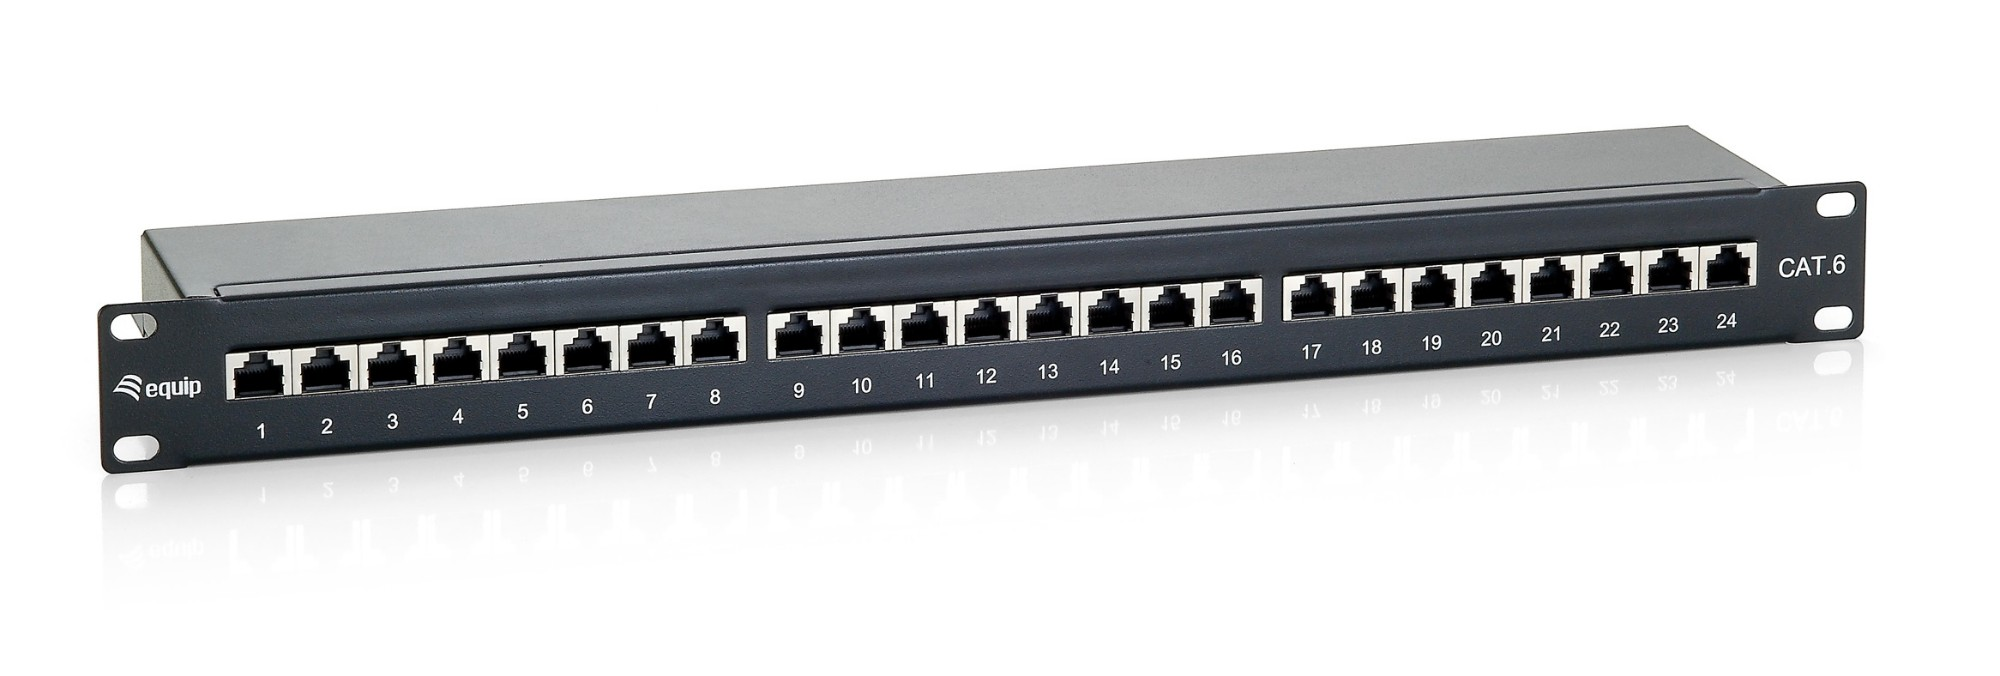 Equip 24-Port Cat.6 Shielded Patch Panel